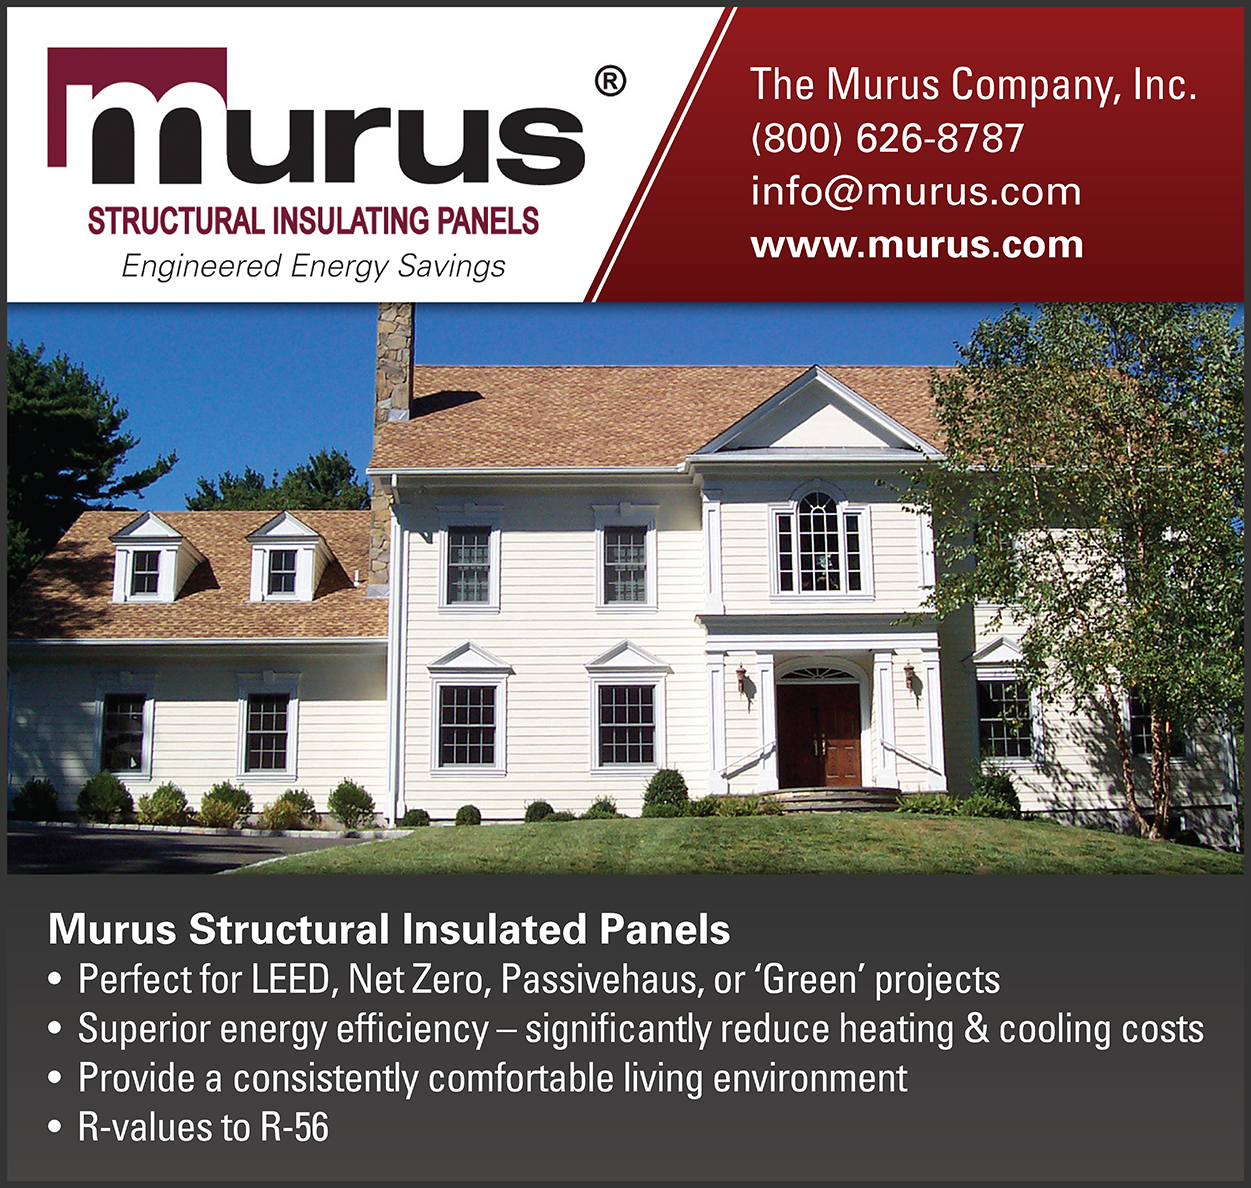 Murus Structural Insulating Panels Ad